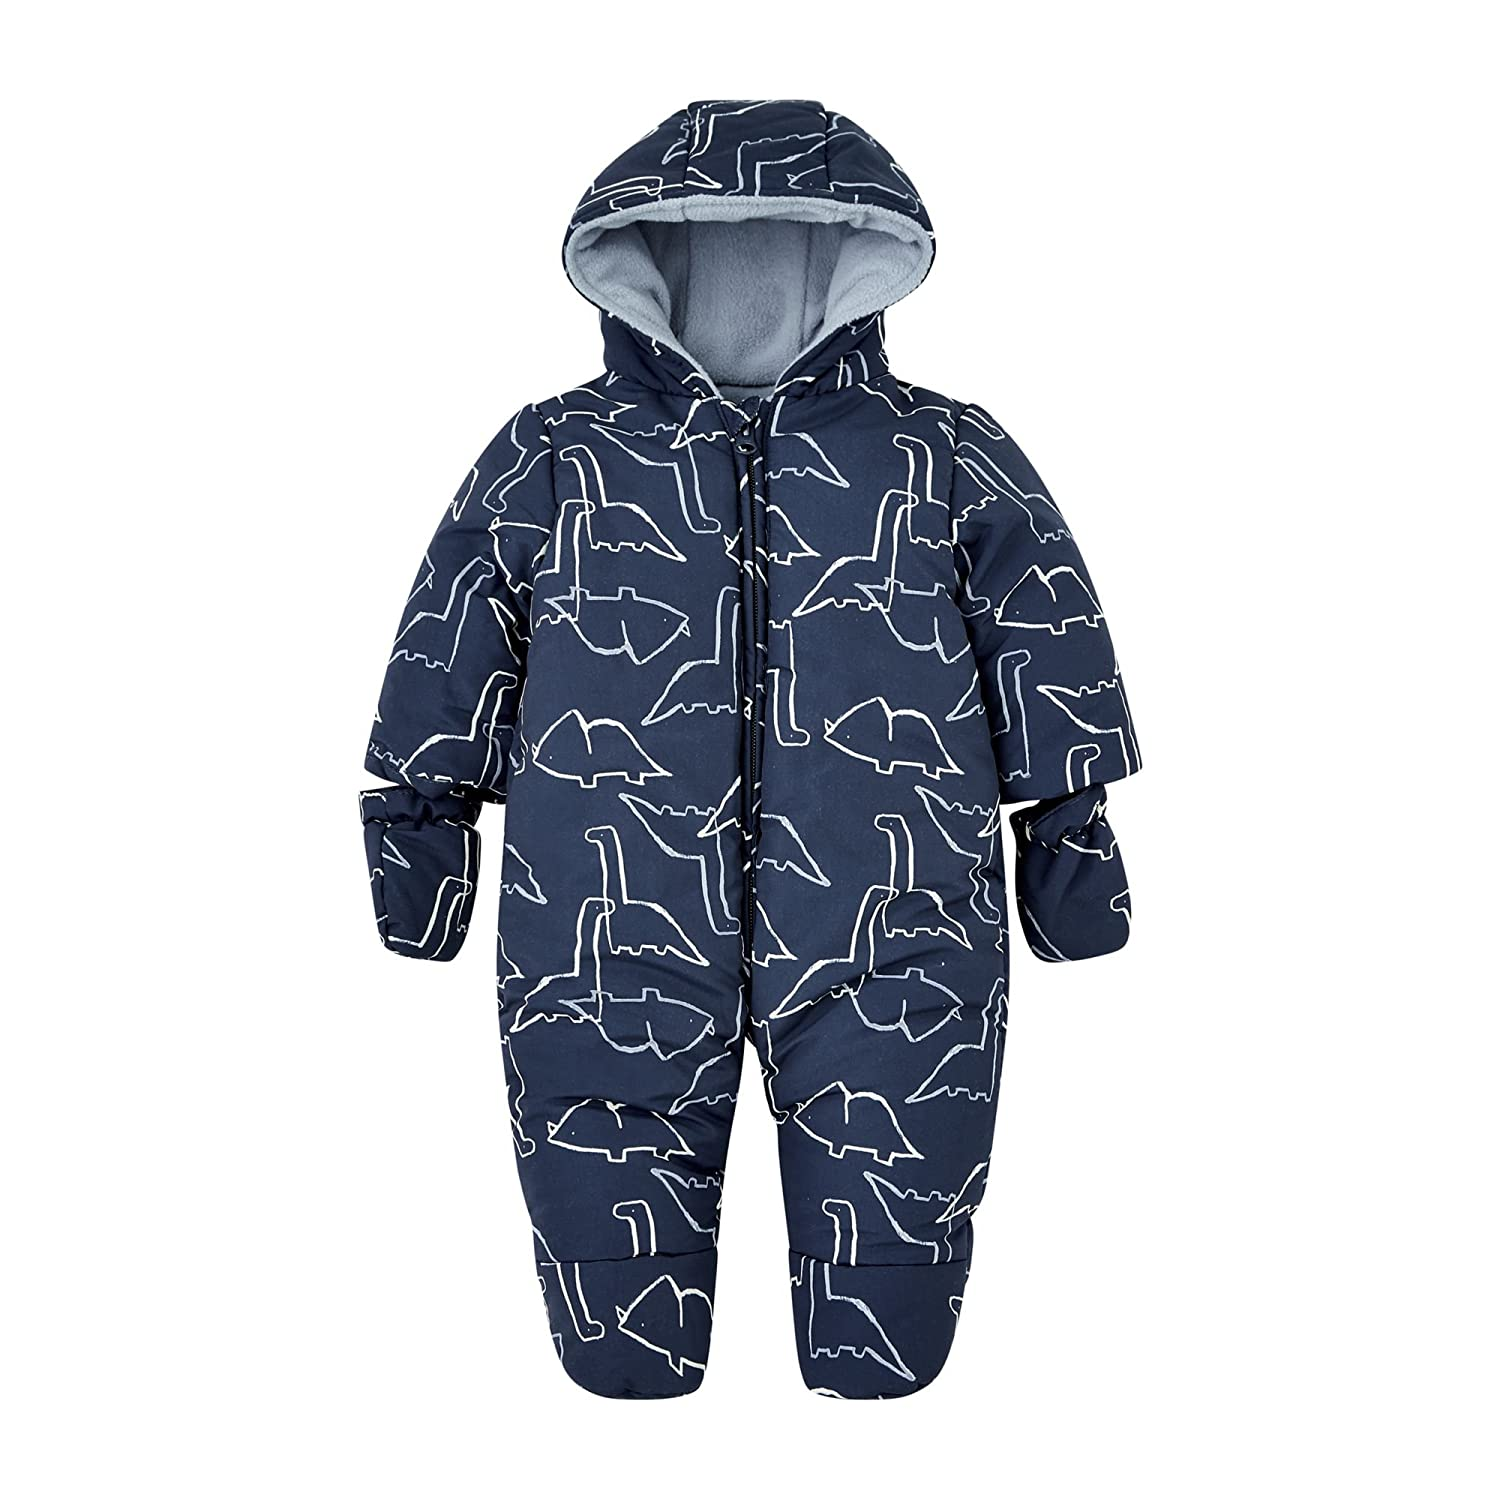 Mothercare Baby Boys Snowsuit Fleece QD721